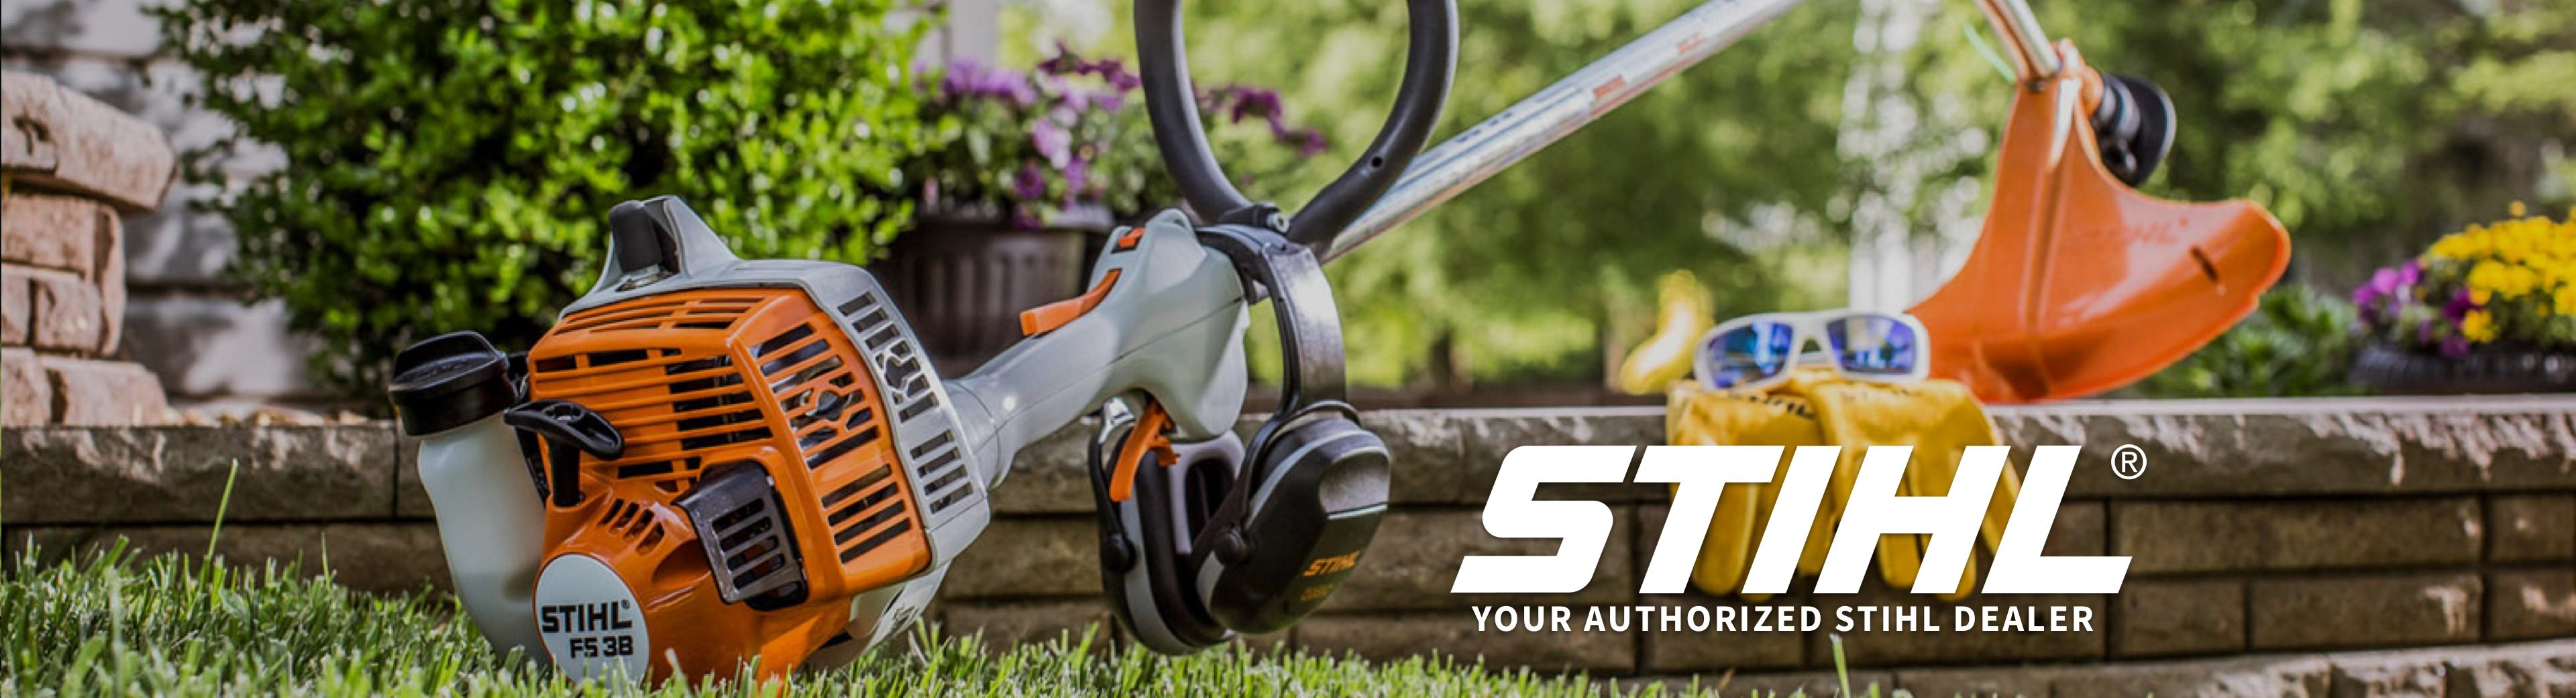 Stihl Power Trimmer - Your Authorized Stihl Dealer